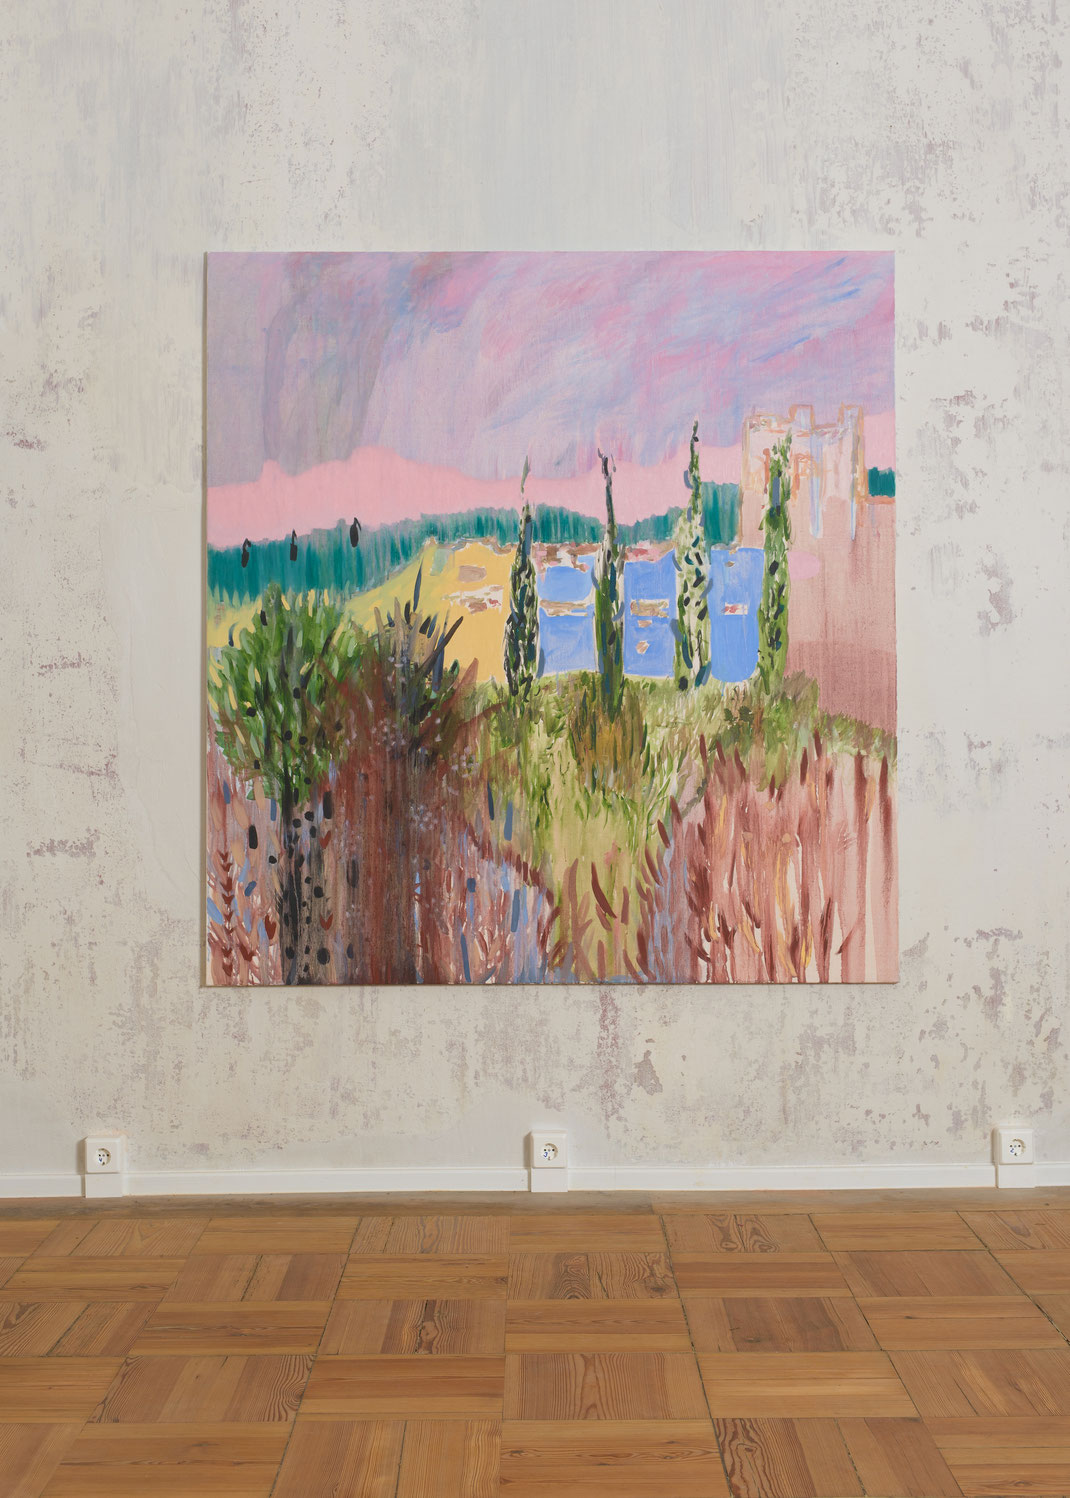 AN END OF series at Exhibition Berlitt Castle, Open Ateliers. Photo: Efacts